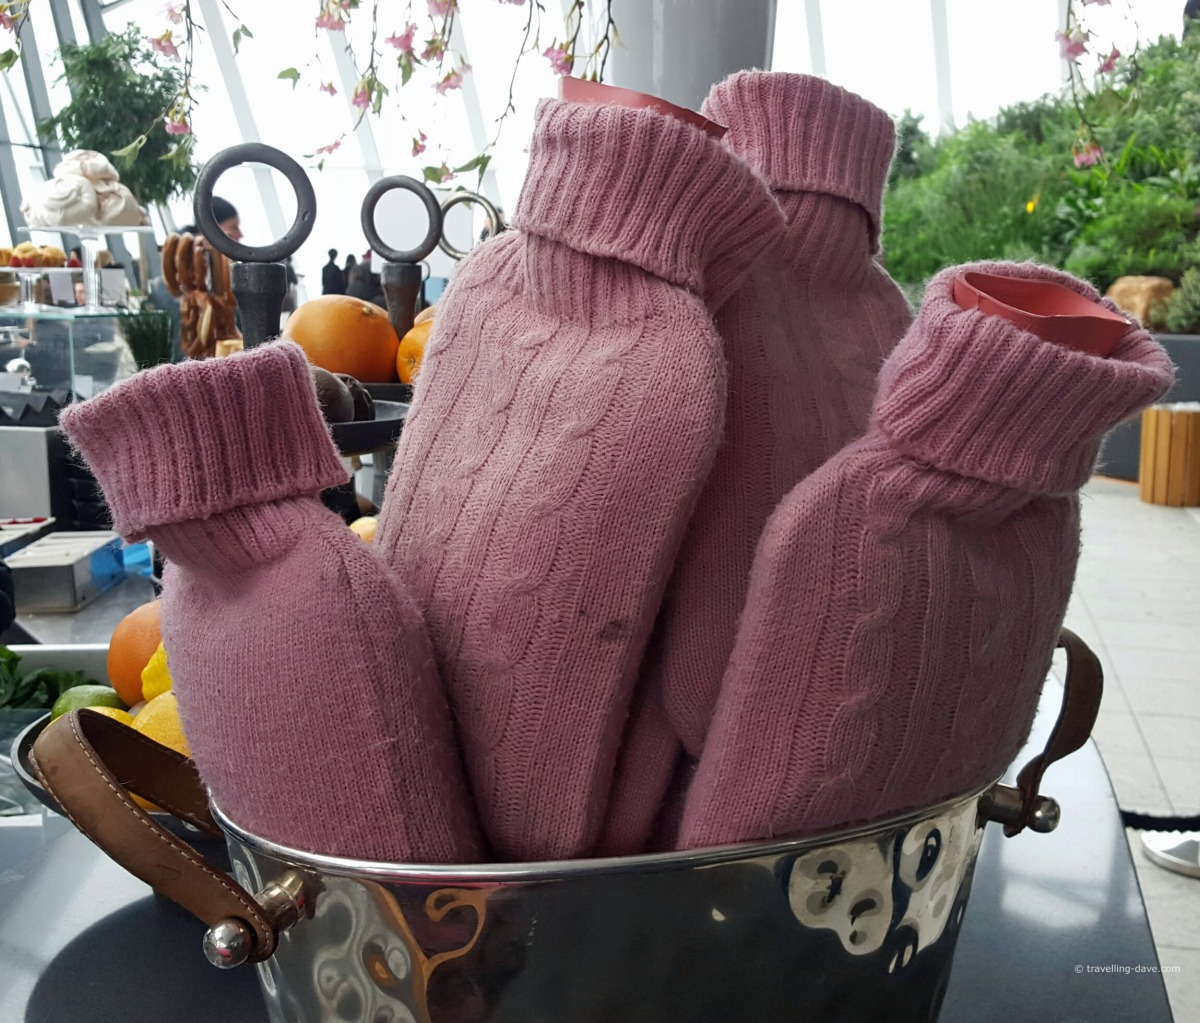 View of pink water bottles in a basket